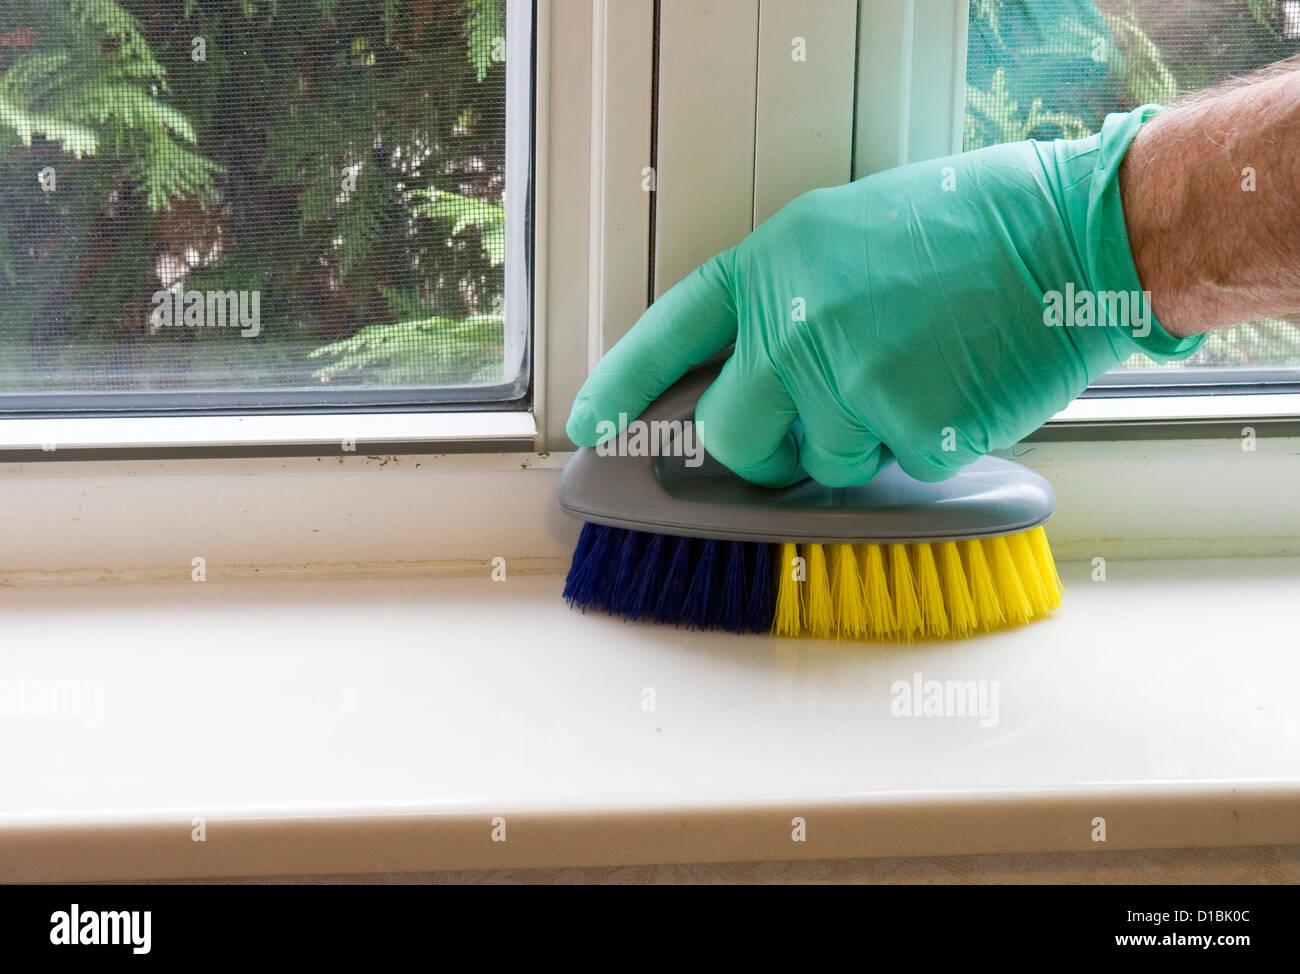 housekeeper with a rubber glove and brush cleaning a window sill - Stock Image